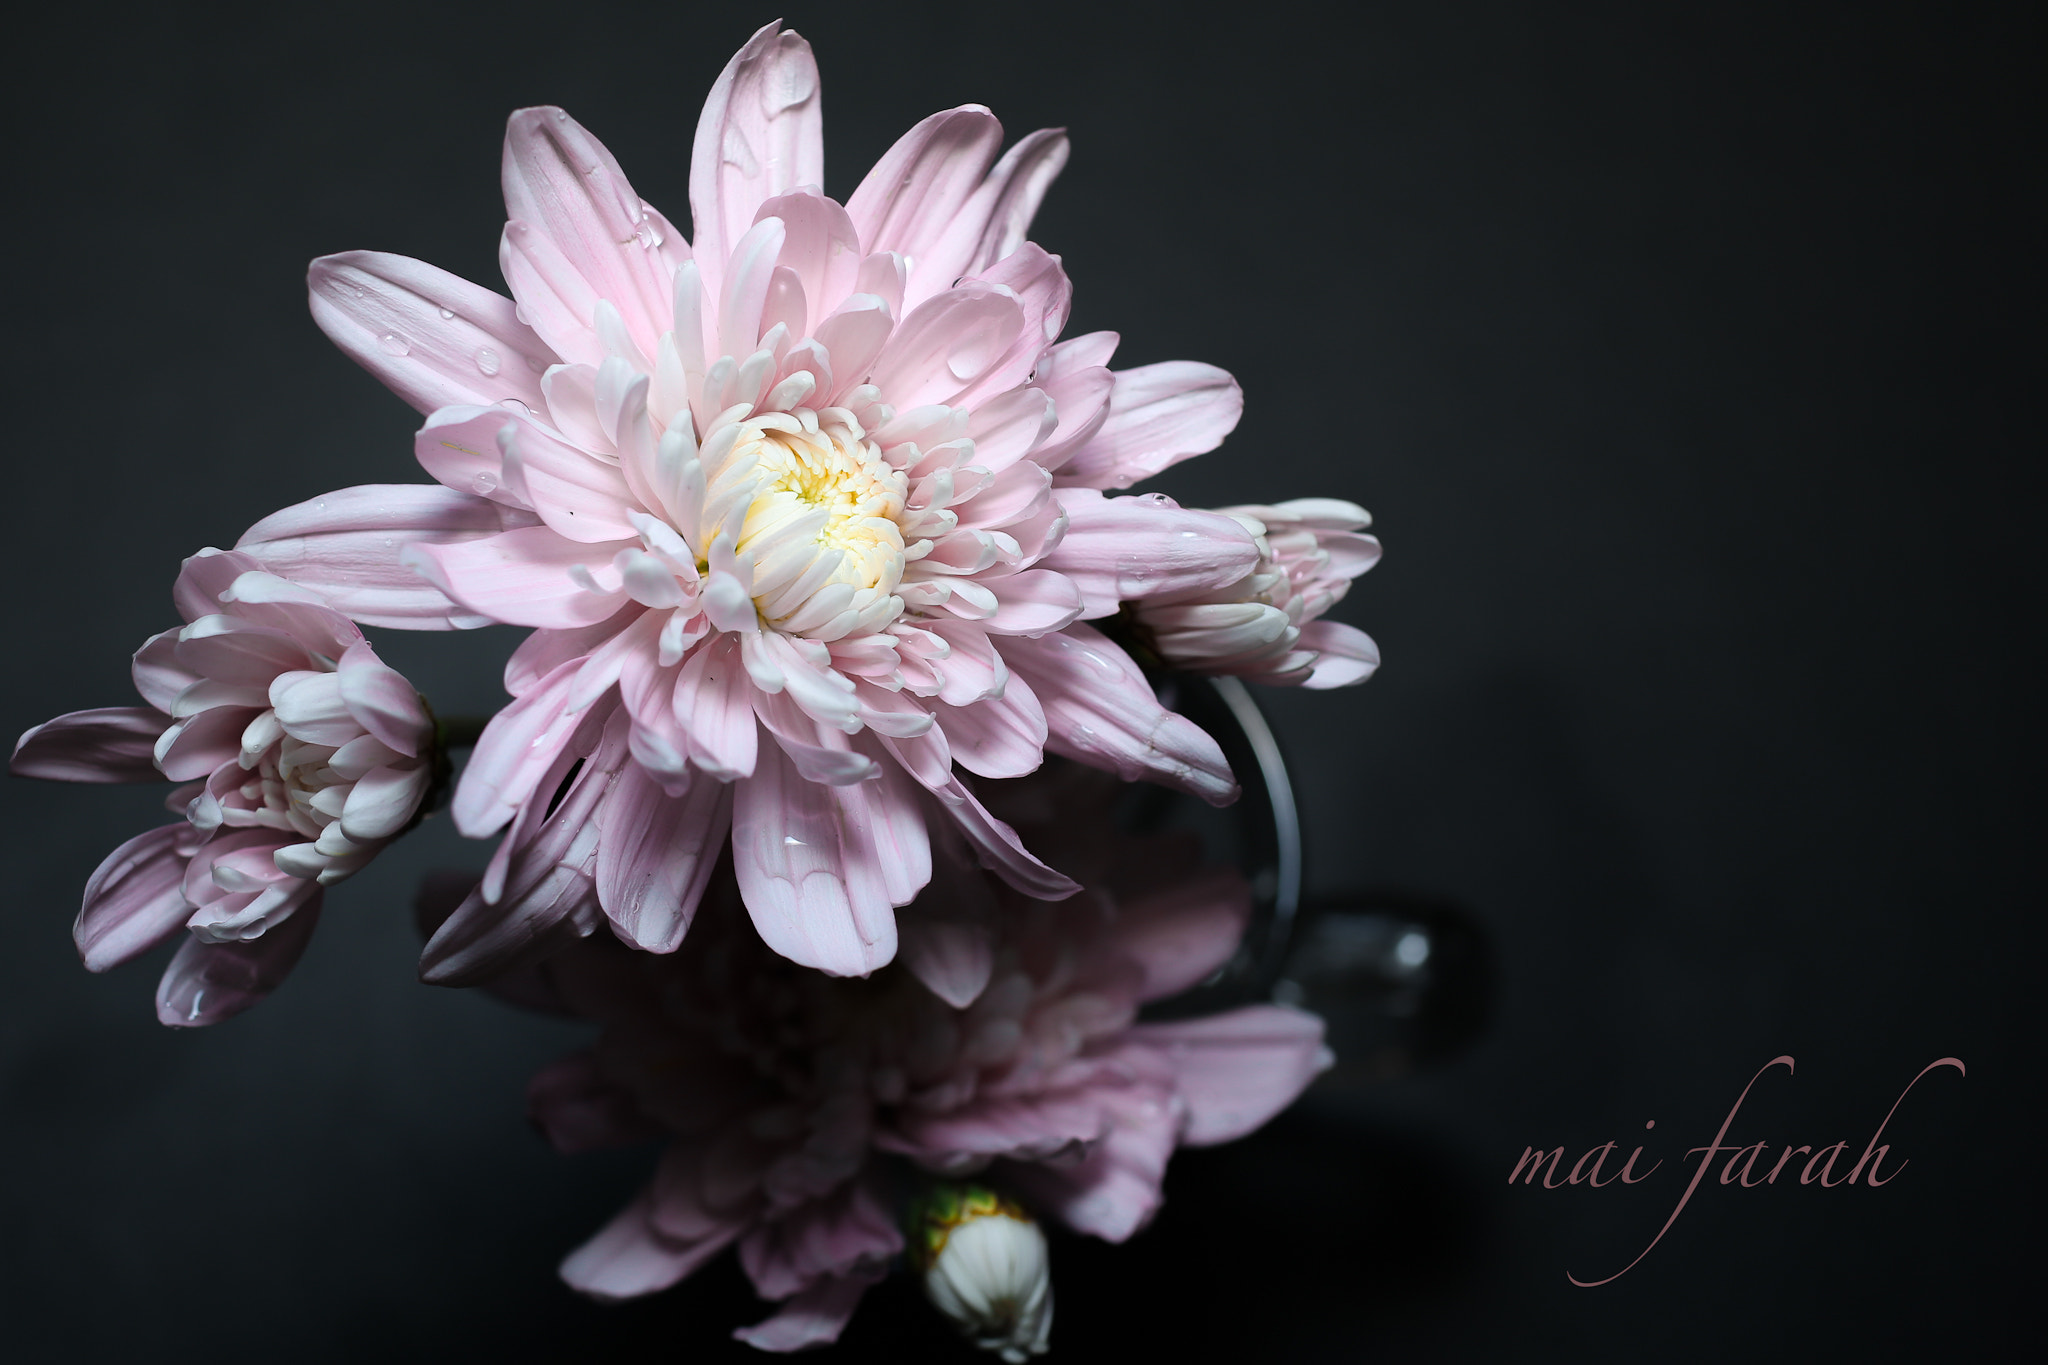 Photograph flower by Maifarah CZ on 500px